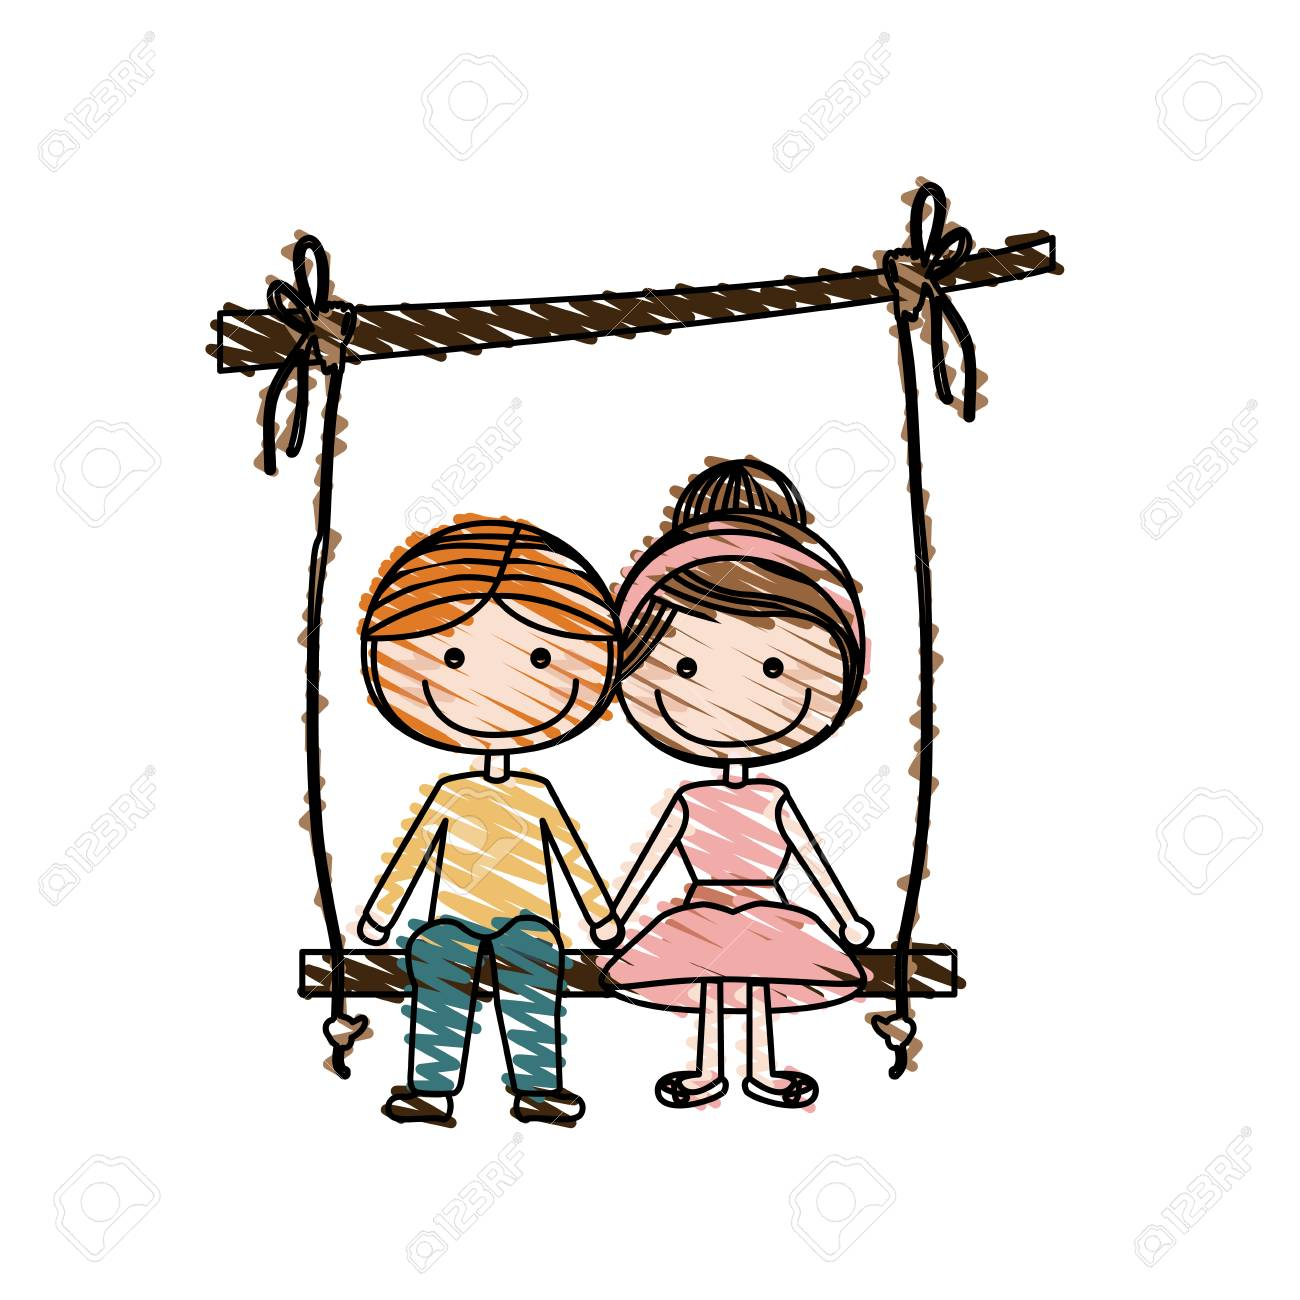 Color pencil drawing of caricature blond guy and girl with collected hairstyle sit in swing hanging